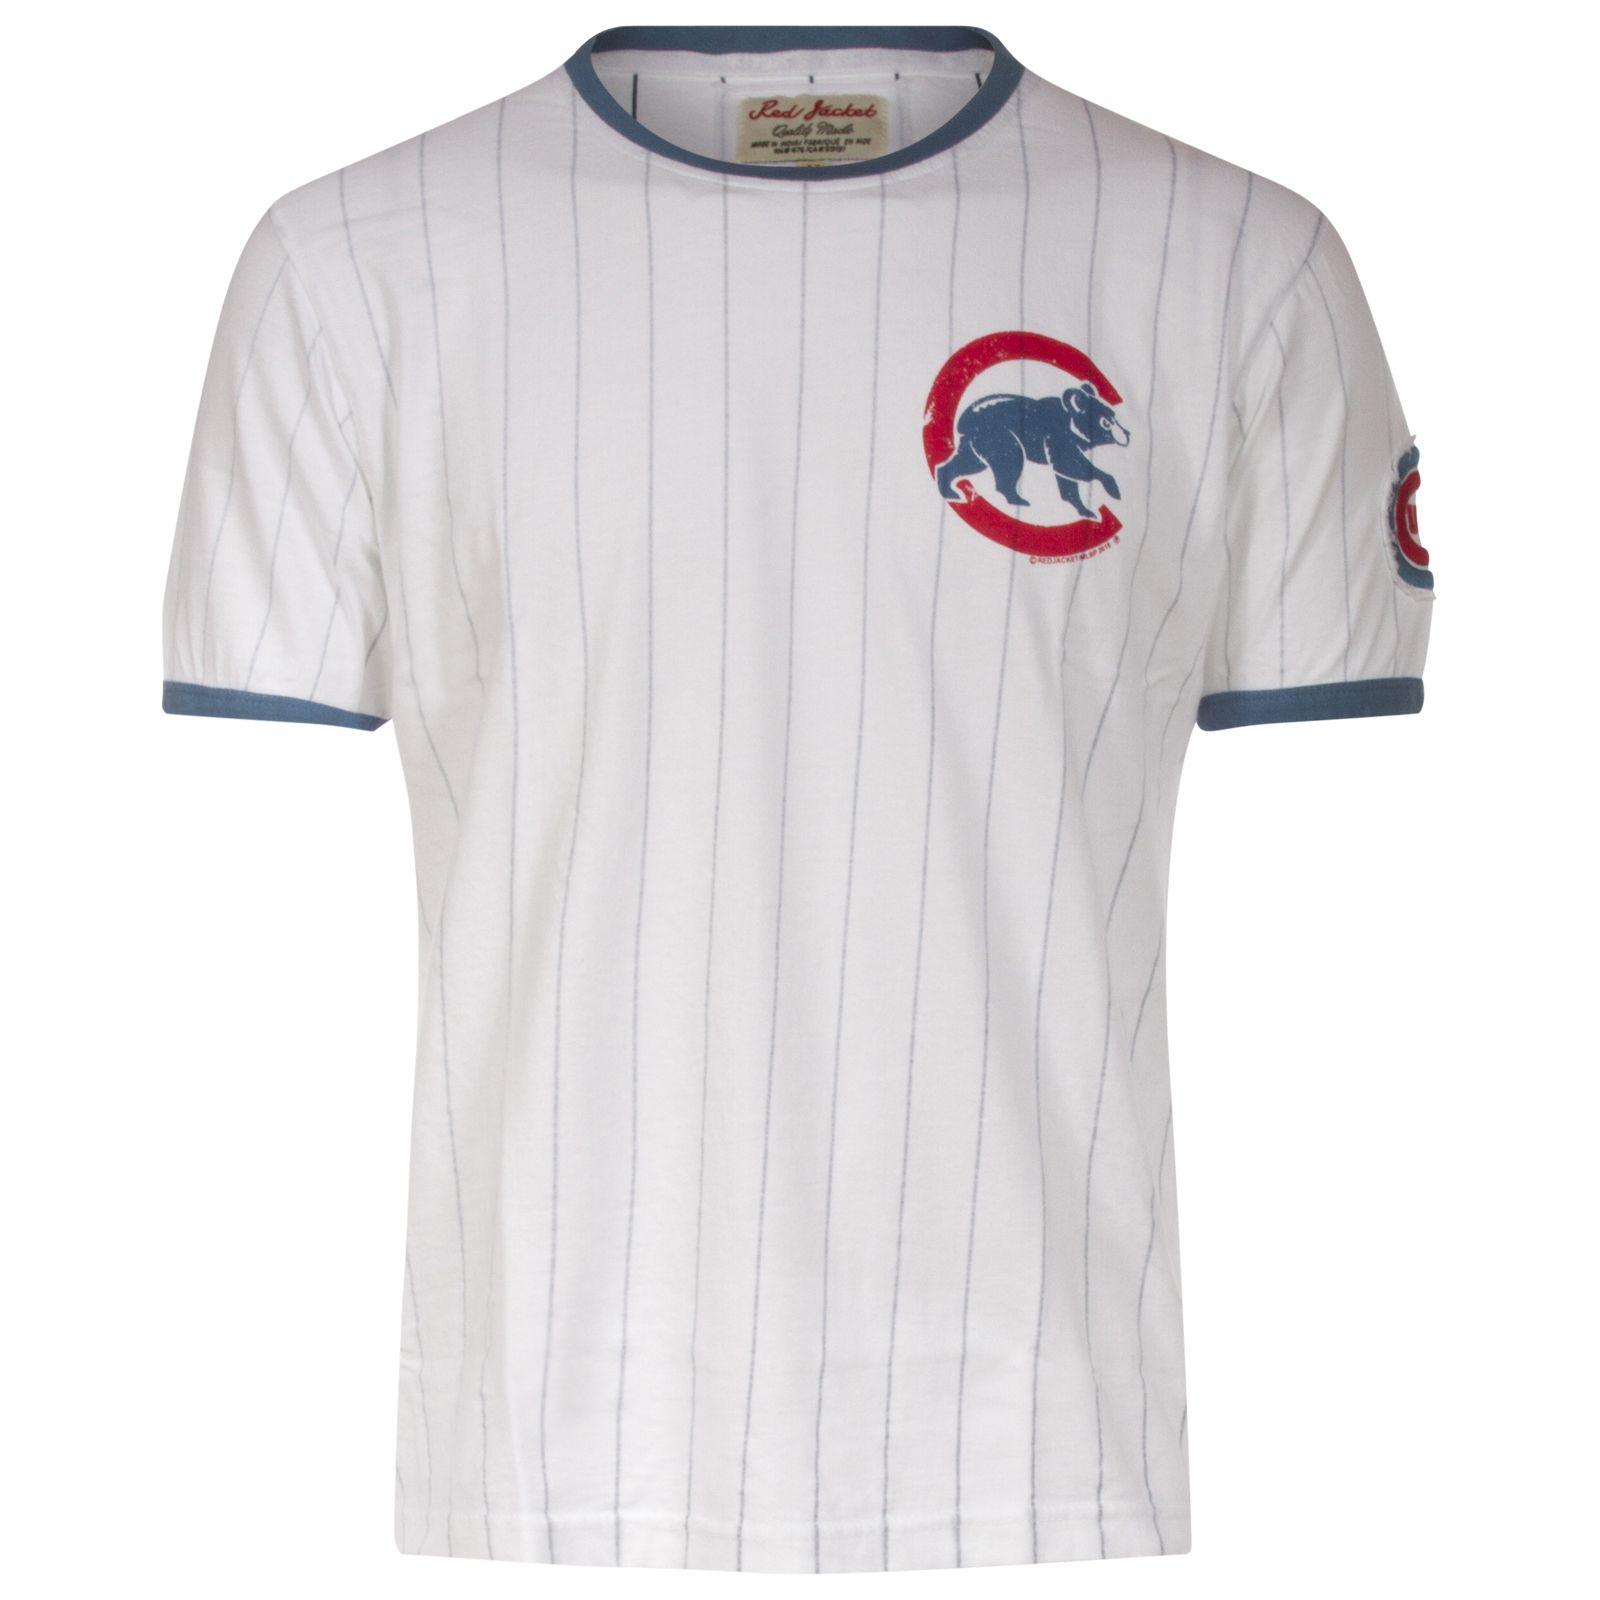 finest selection f3dd0 a4dd5 Pin on Cubs Shirts